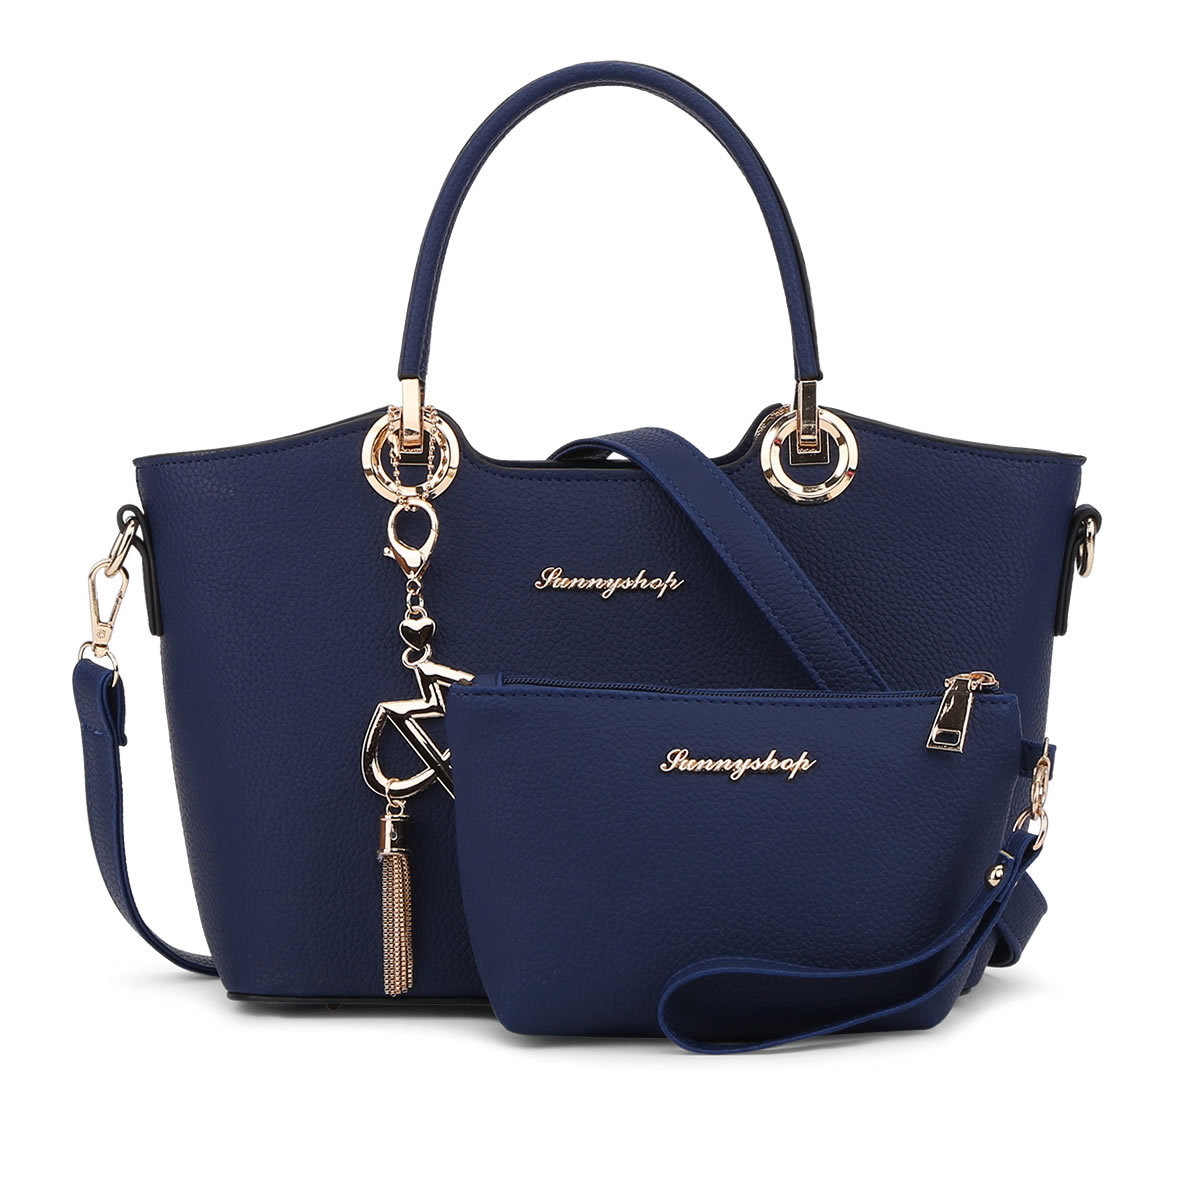 Compare Prices on 2 Set Bags- Online Shopping/Buy Low Price 2 Set ...